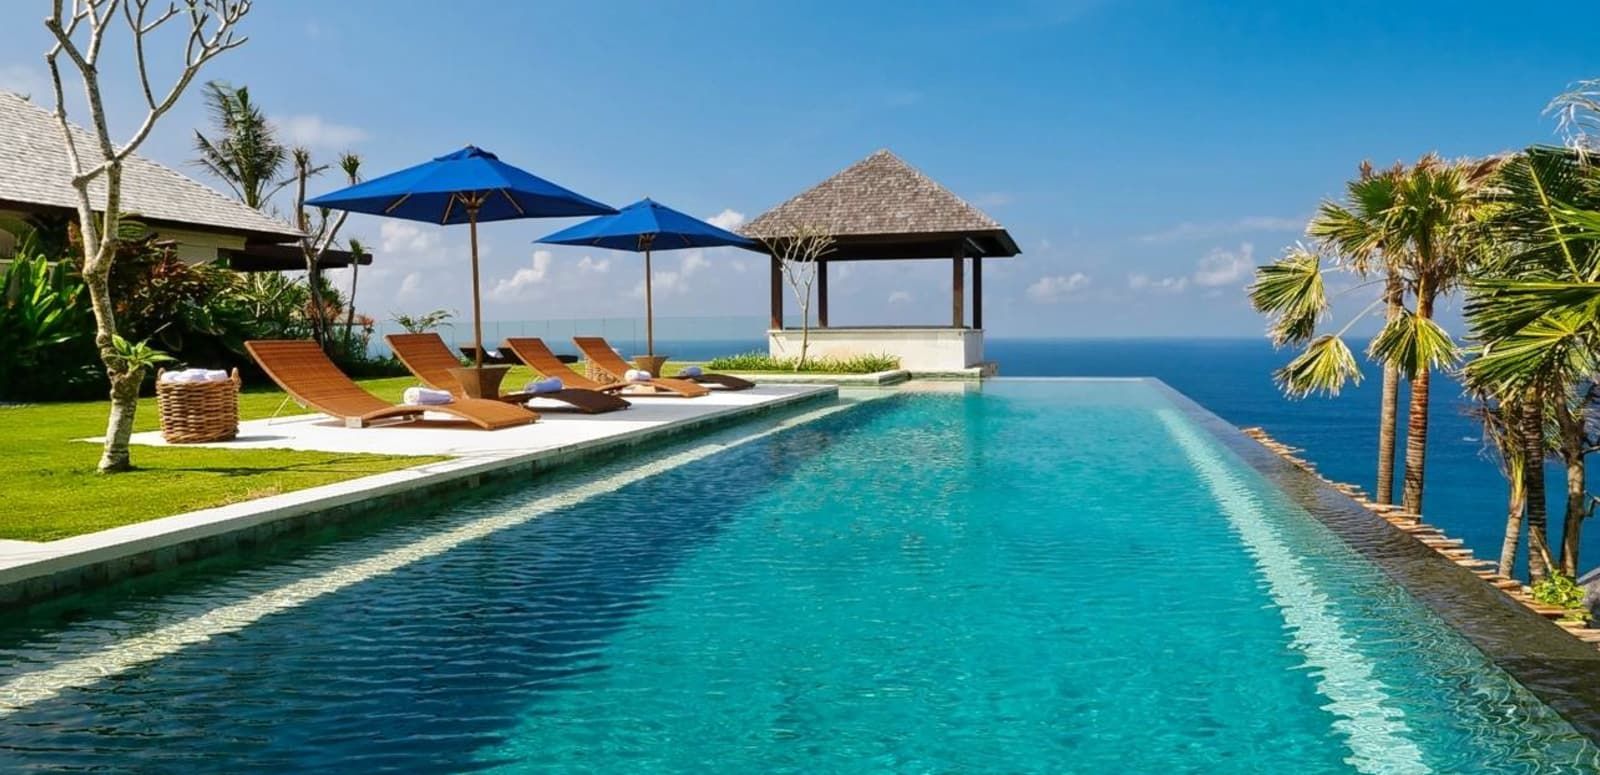 30 Best Luxury Resorts In Bali 2019 Photos 1500 Reviews